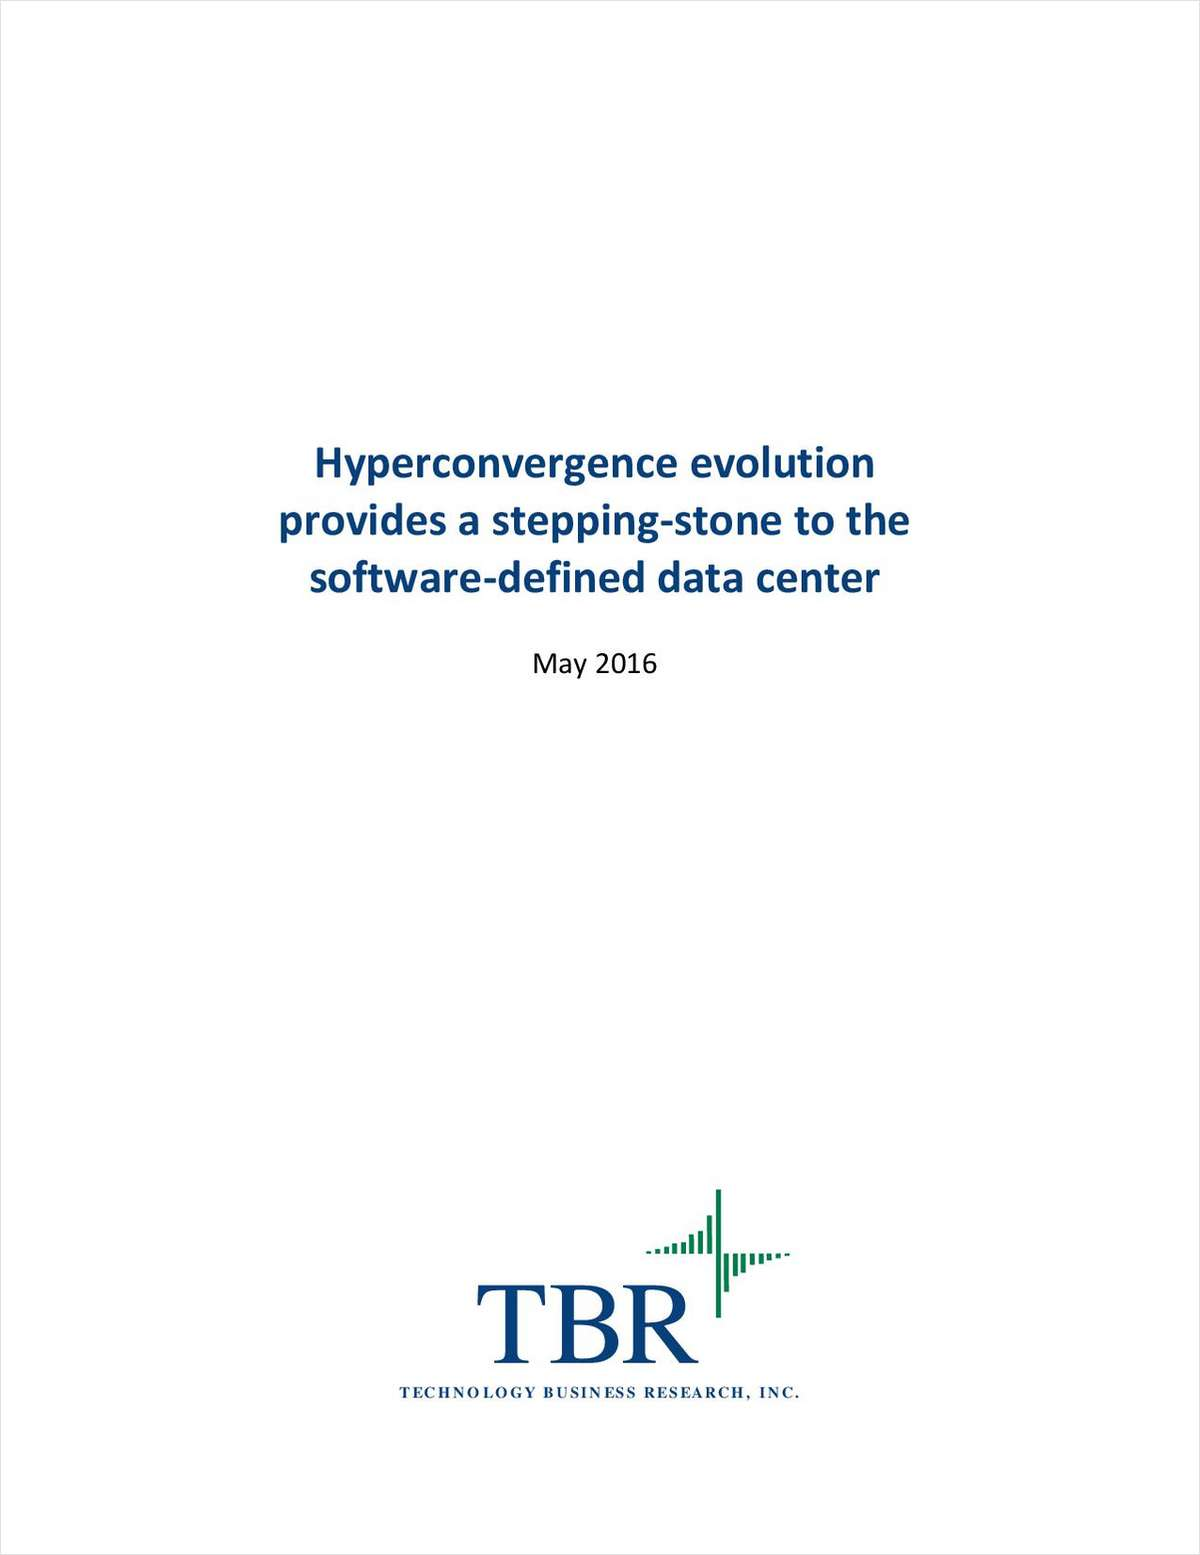 Hyperconvergence: The Stepping-Stone to the Software-Defined Data Center